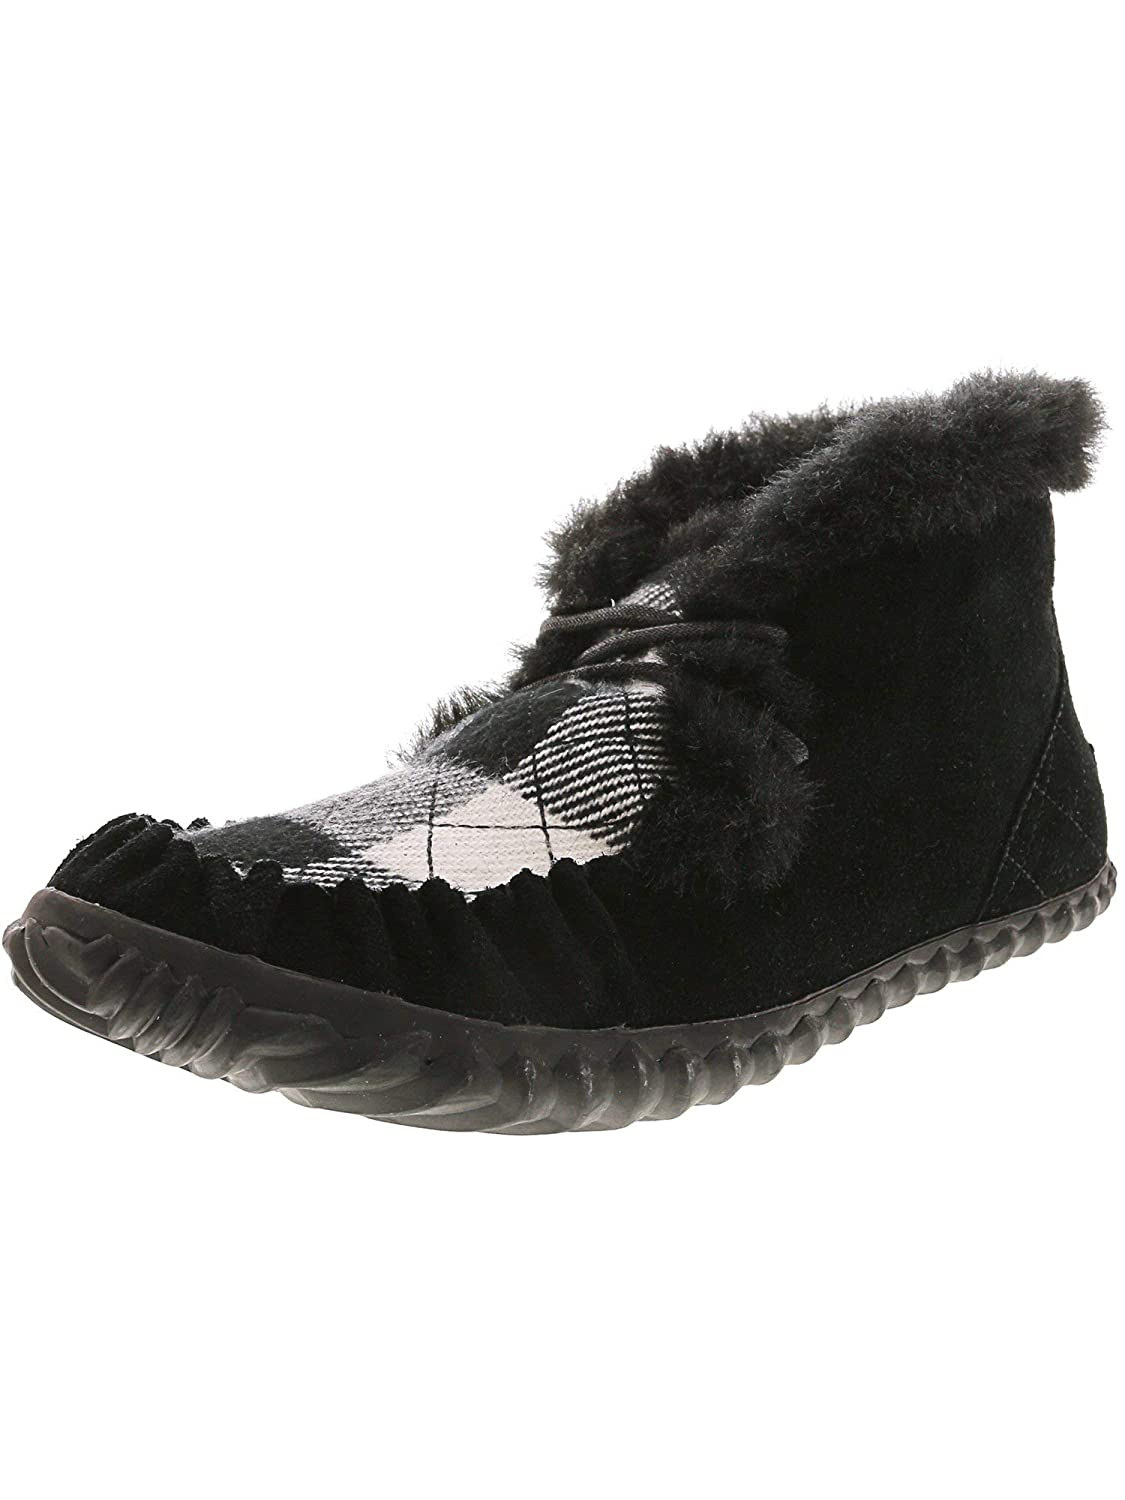 Sorel Women's Out 'n About Moccasins